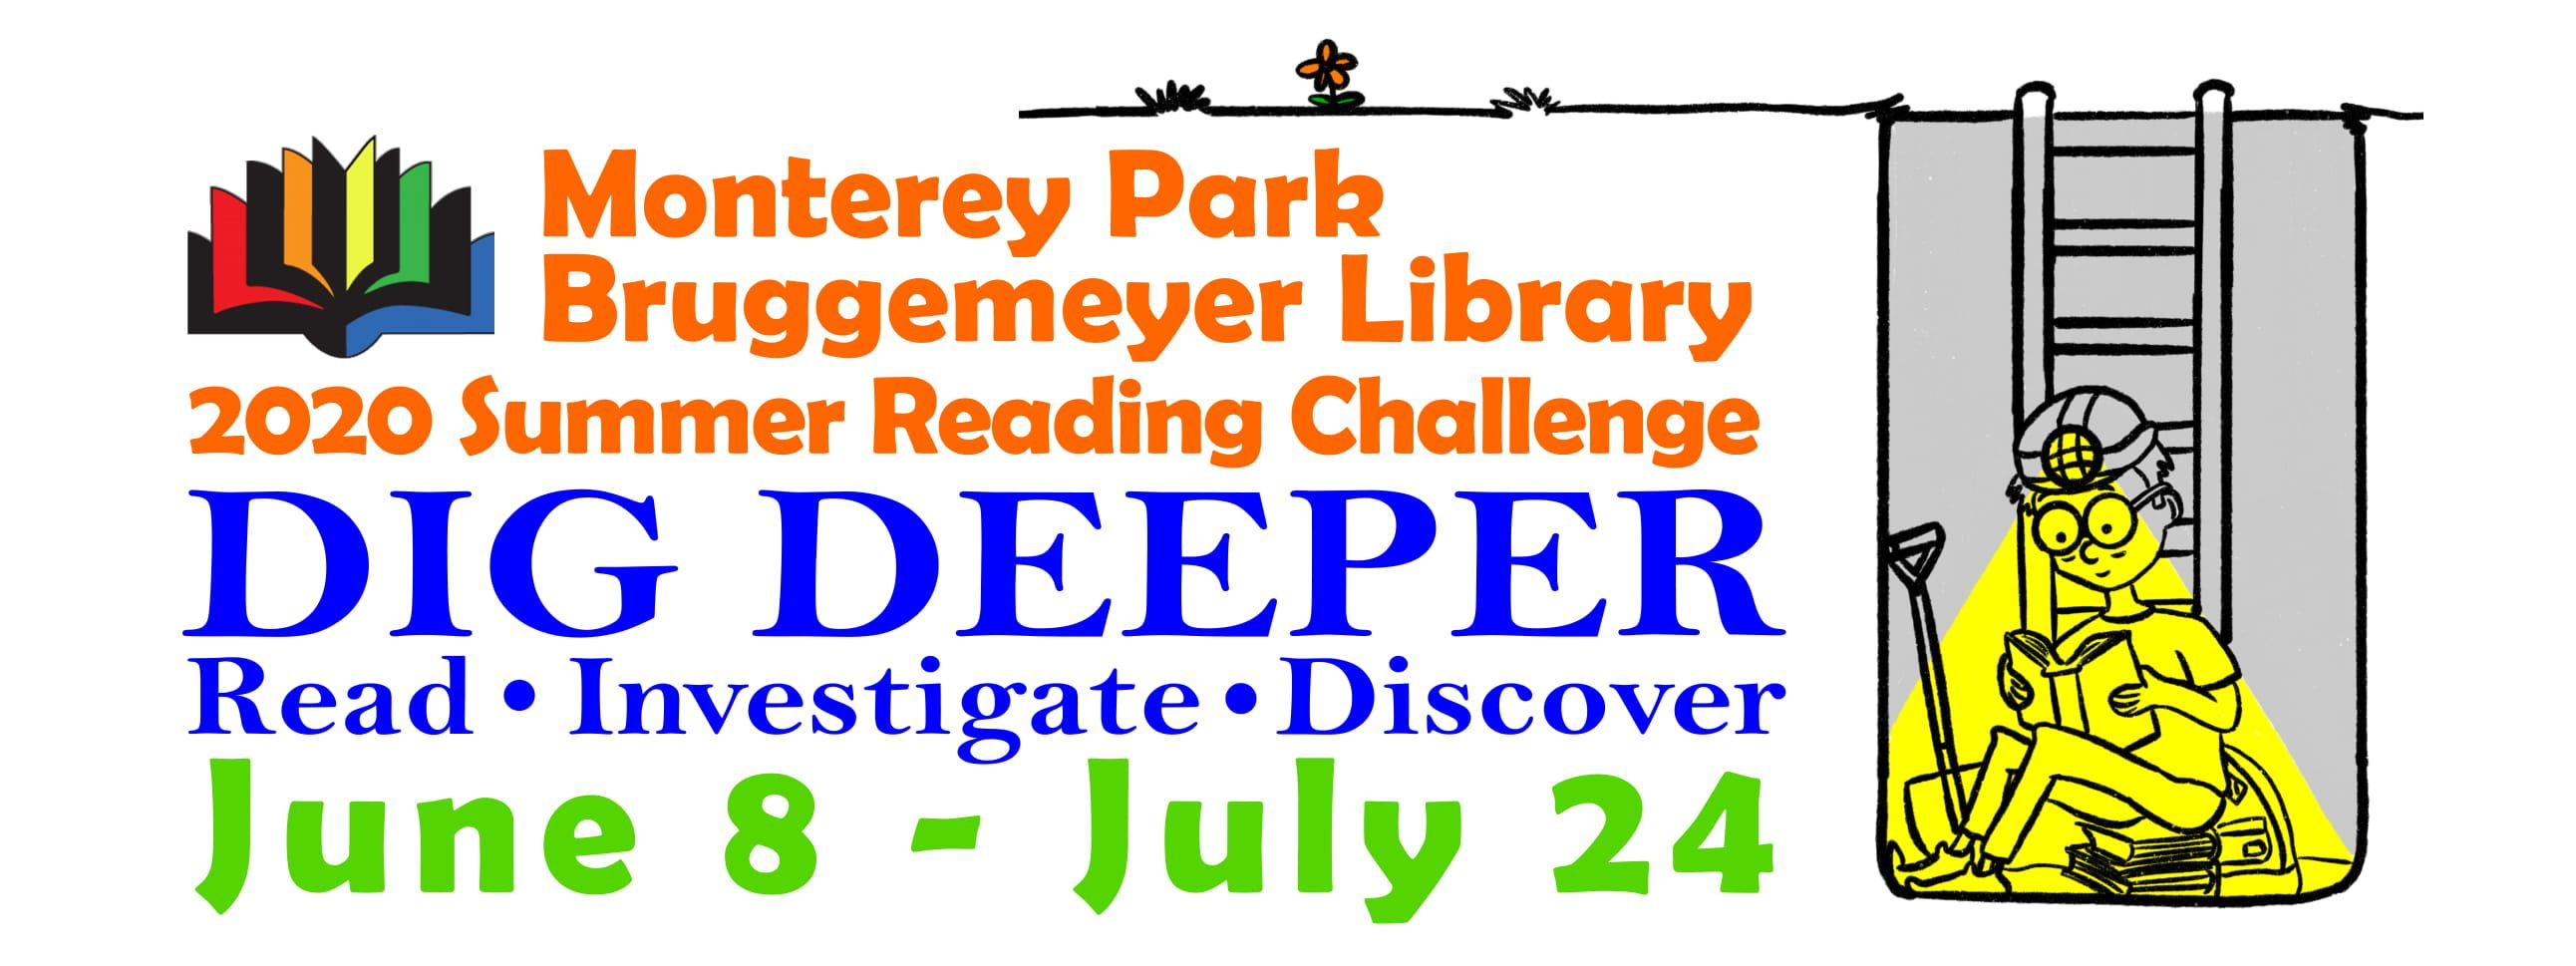 Library summer reading program dig deeper logo